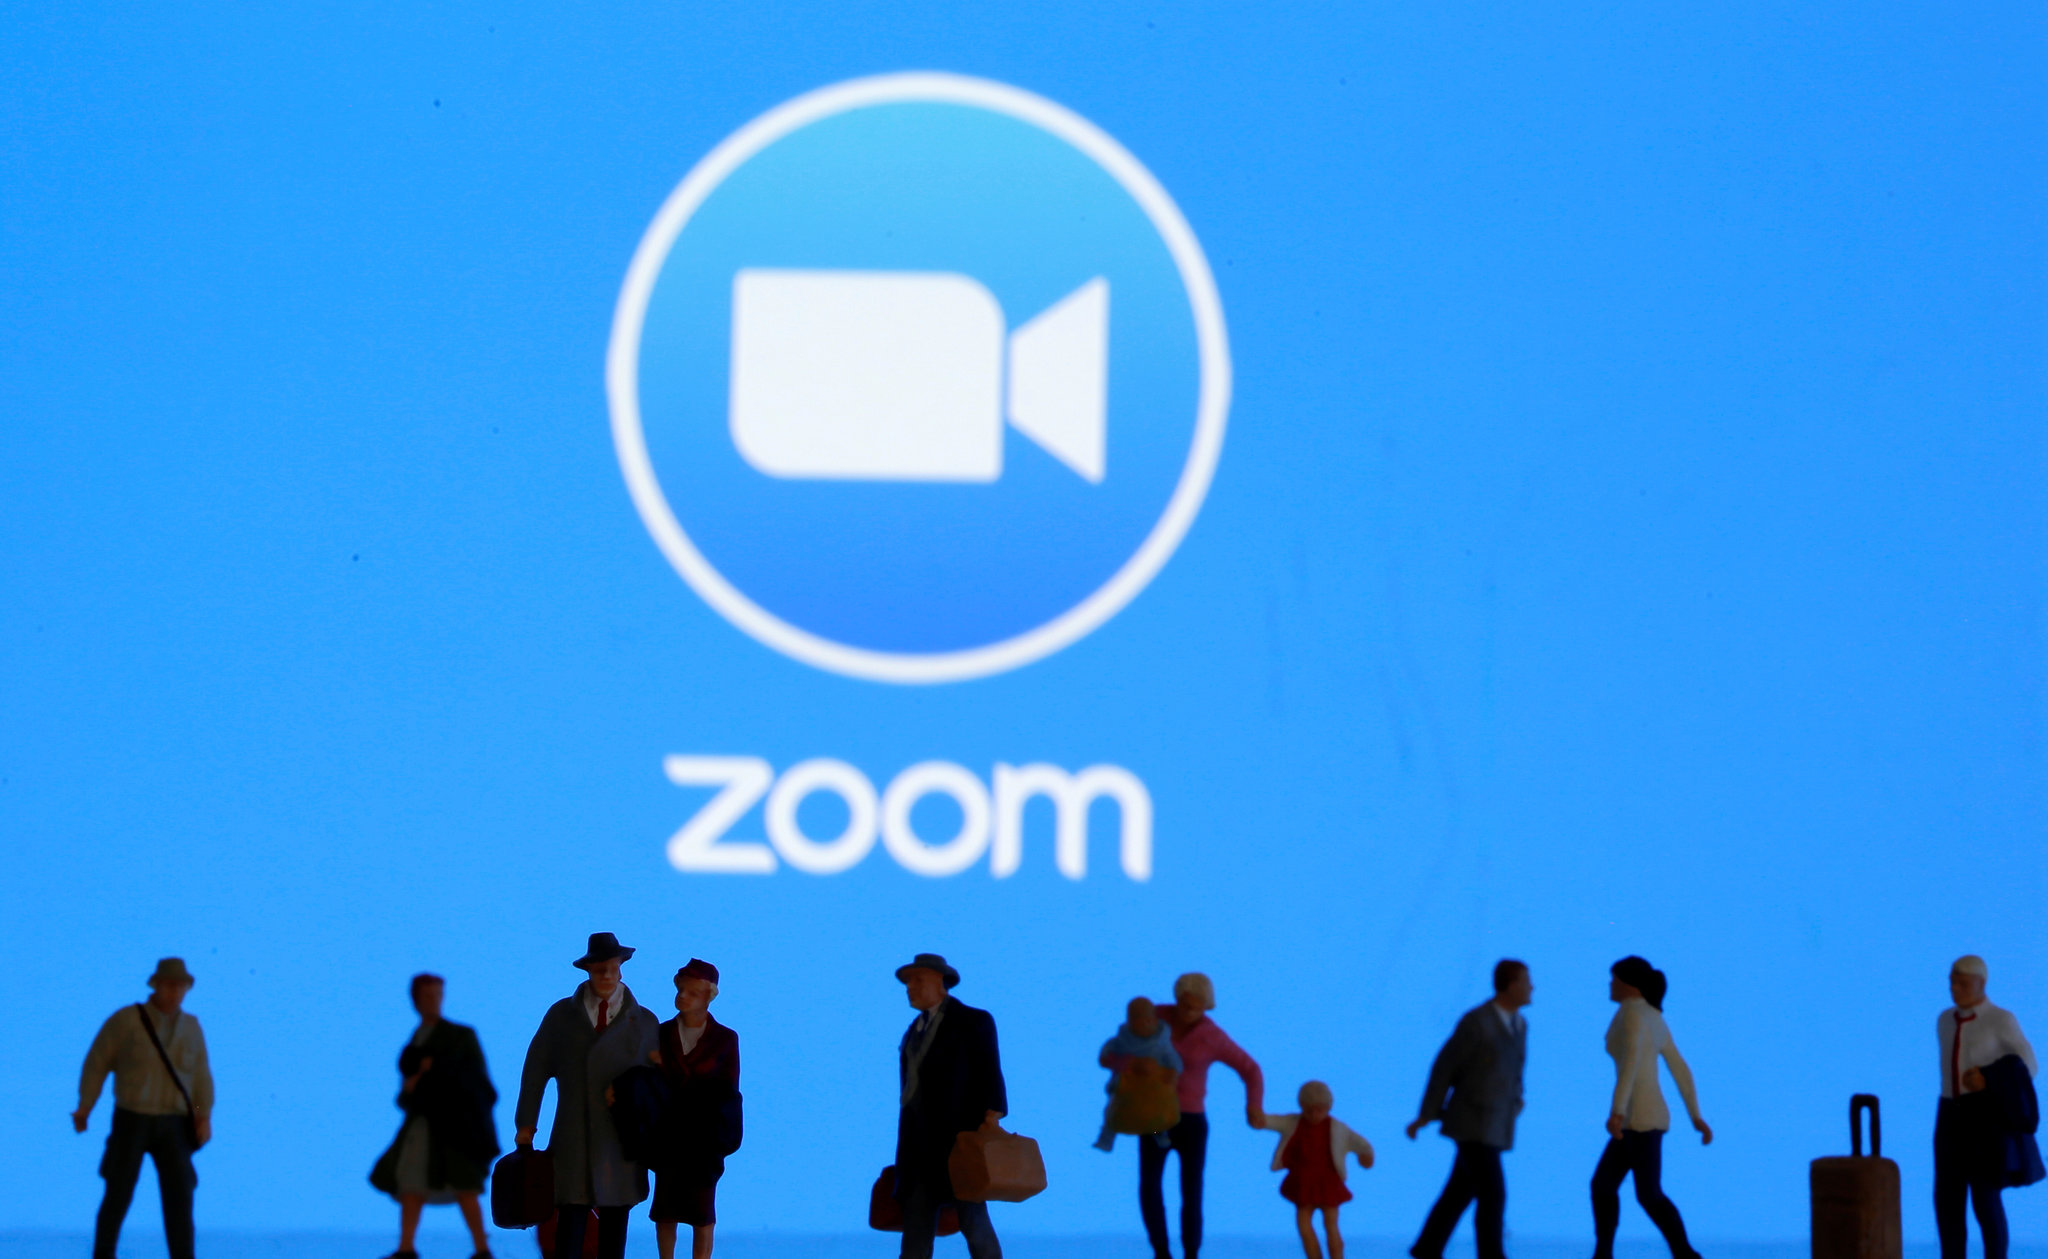 Attending the Conference (Via Zoom)